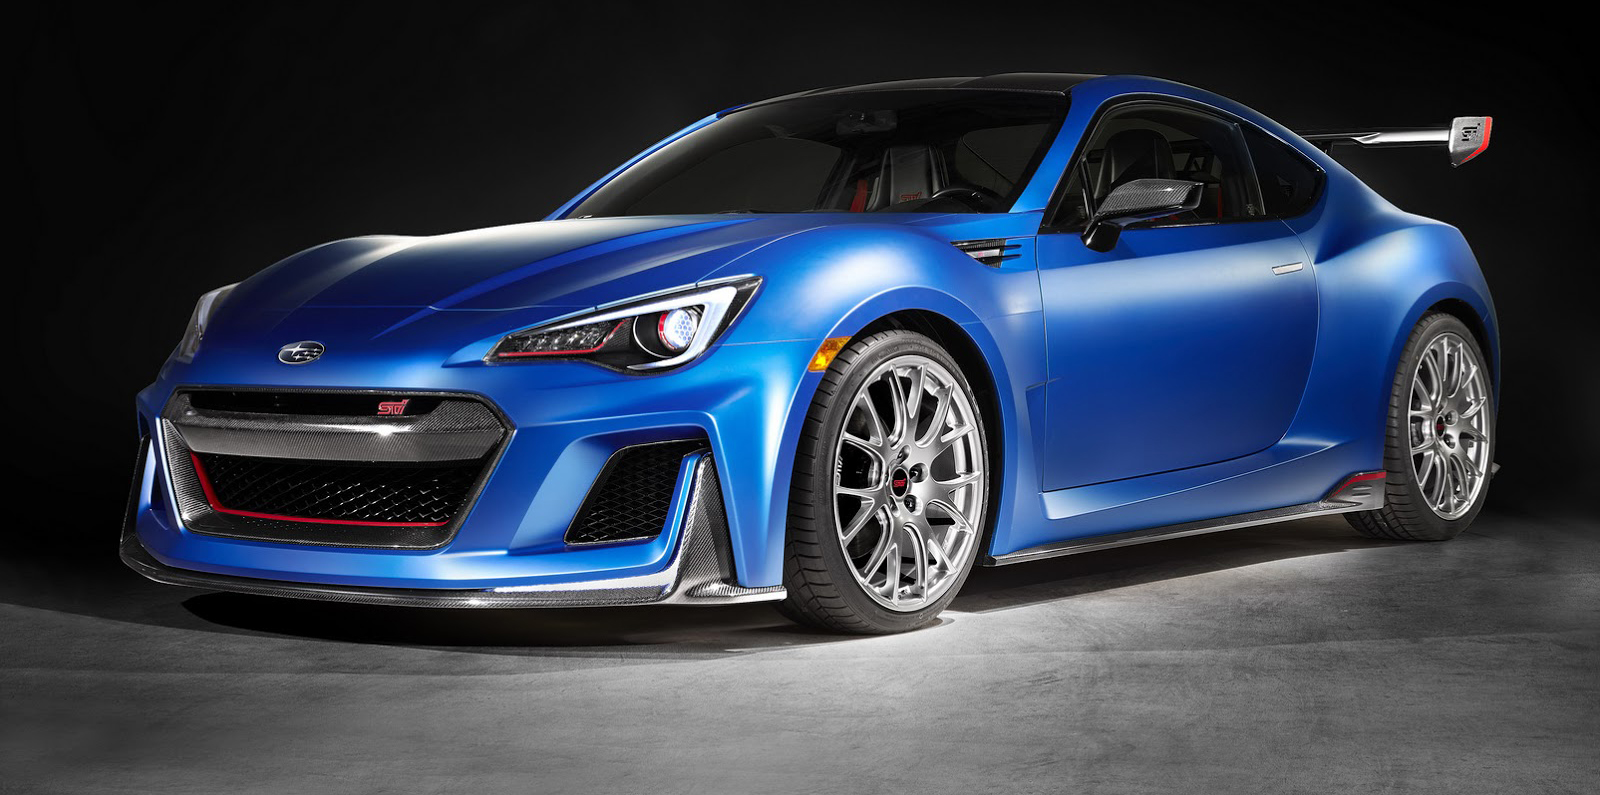 subaru brz sti un turbo de 345 cv revista de coches. Black Bedroom Furniture Sets. Home Design Ideas